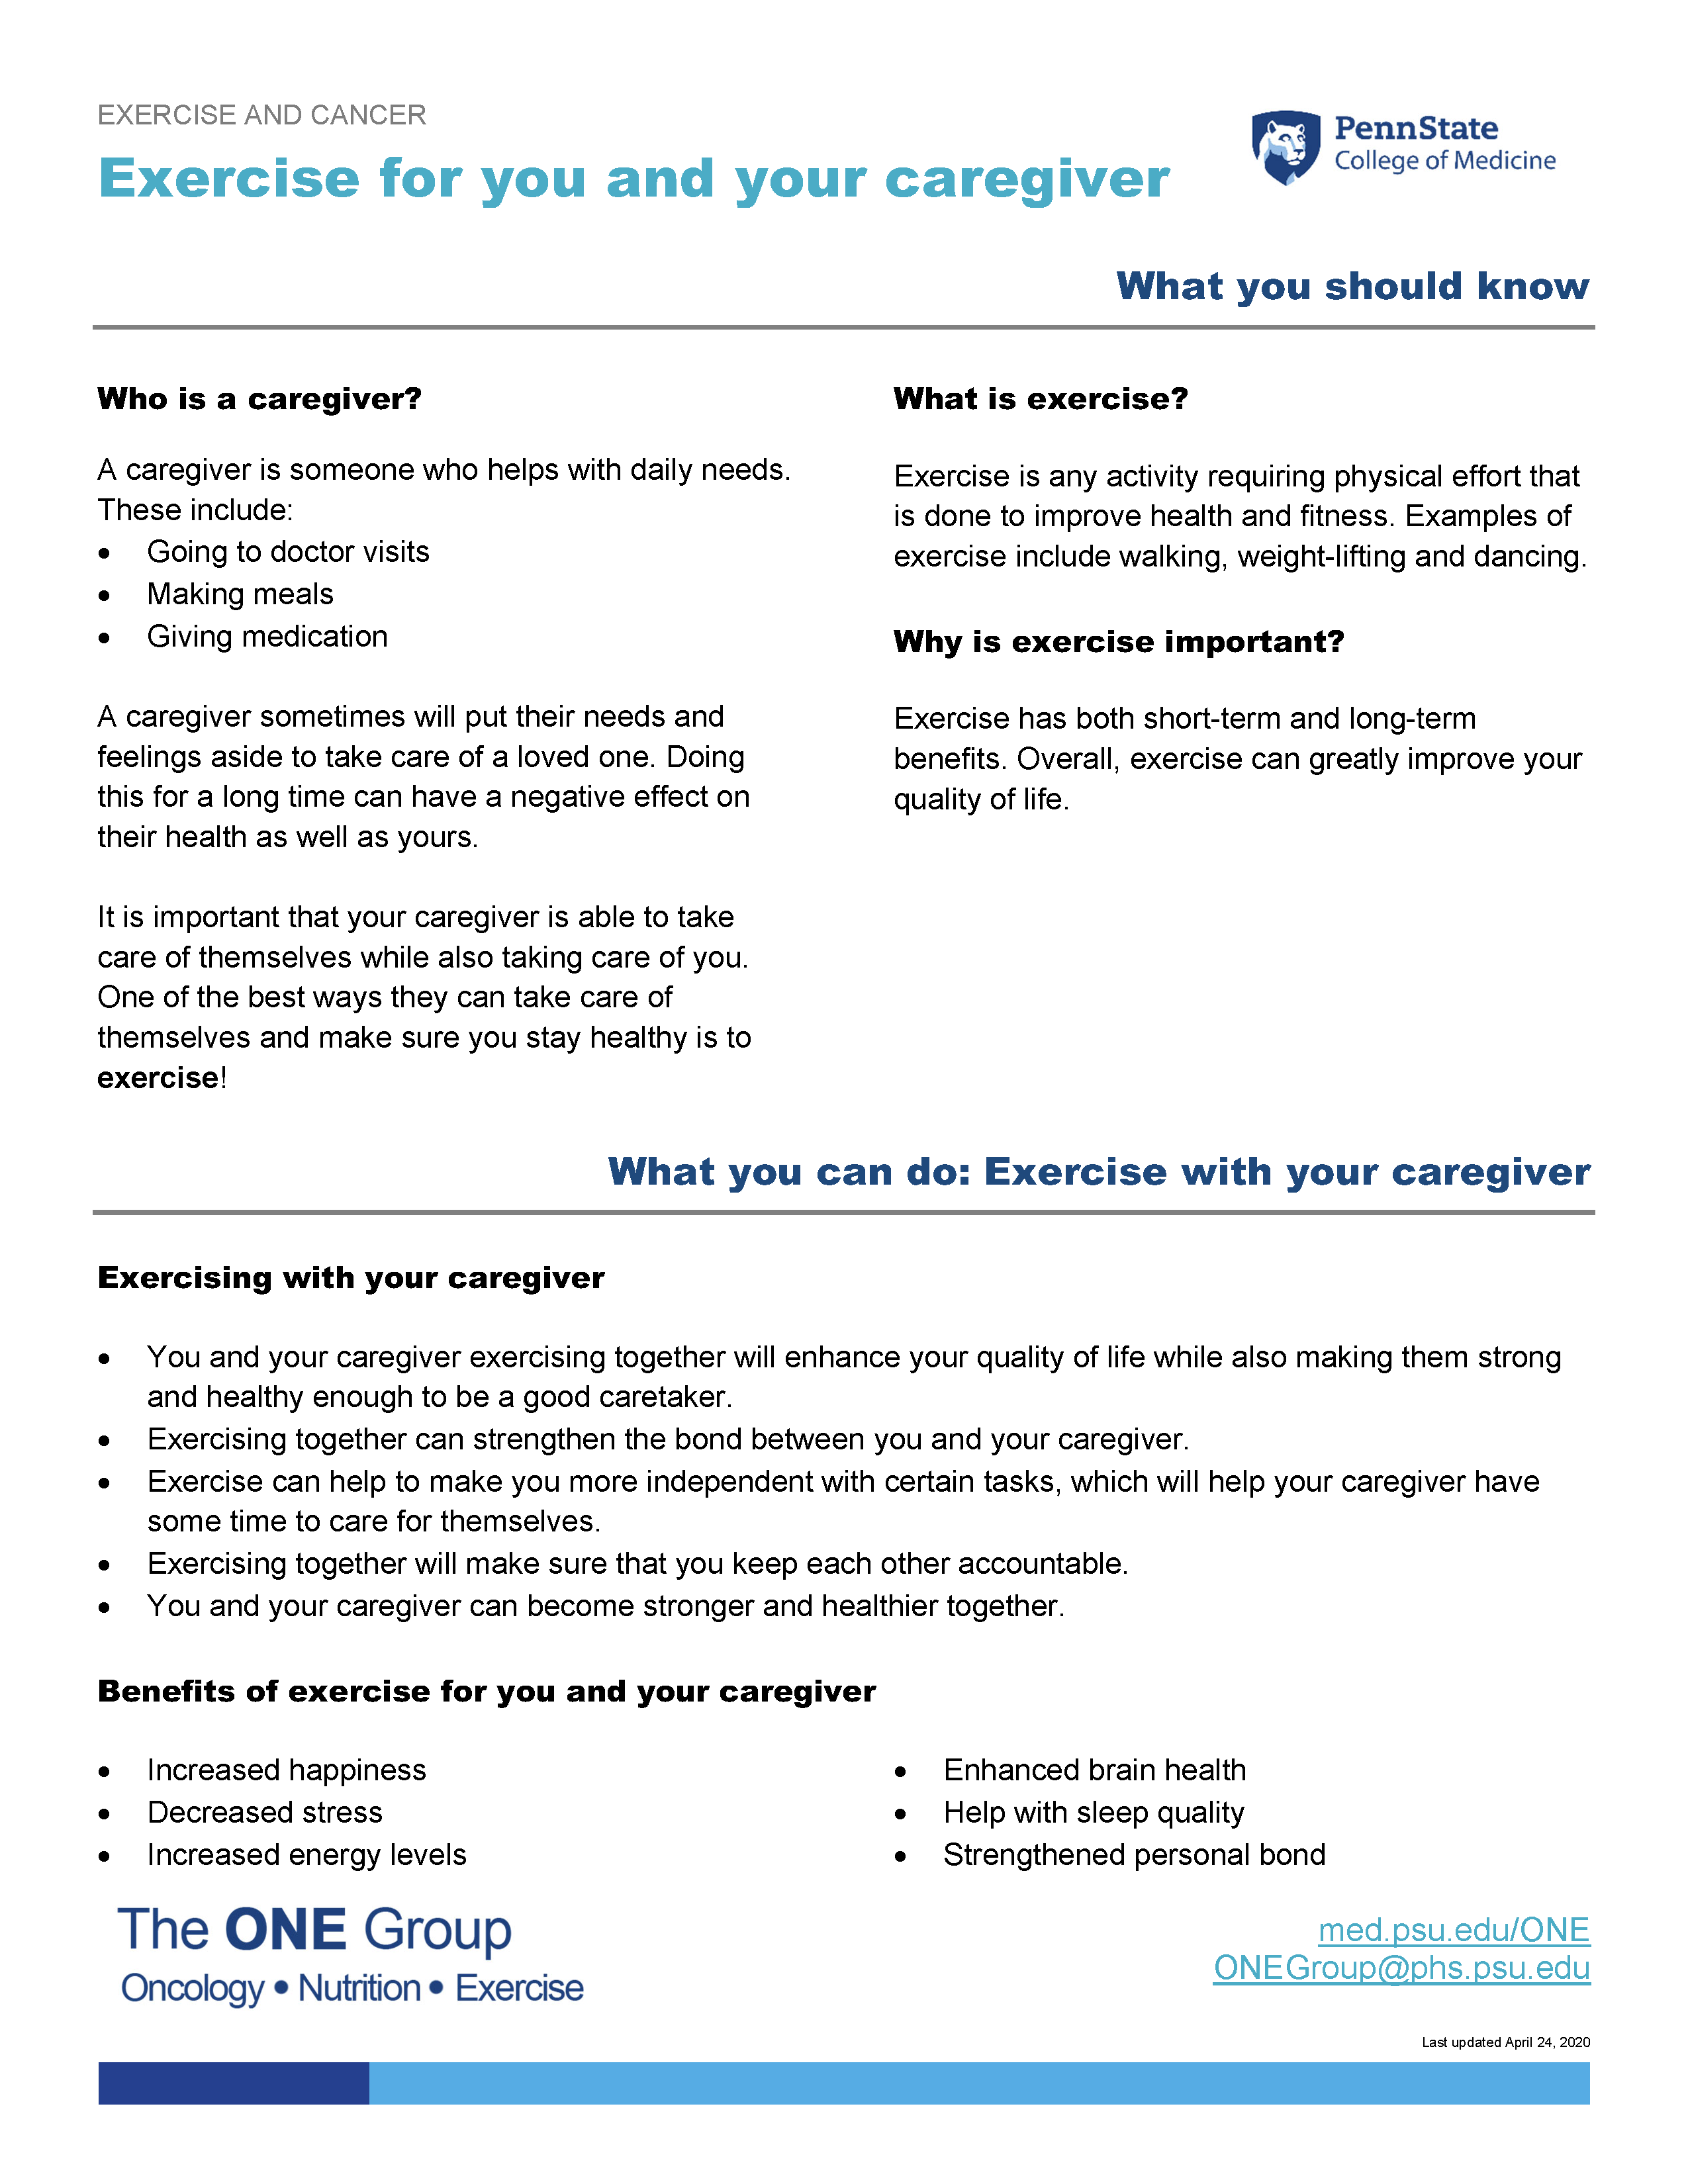 The exercise for you and your caregiver guide from The ONE Group includes the information on this page, formatted for print.